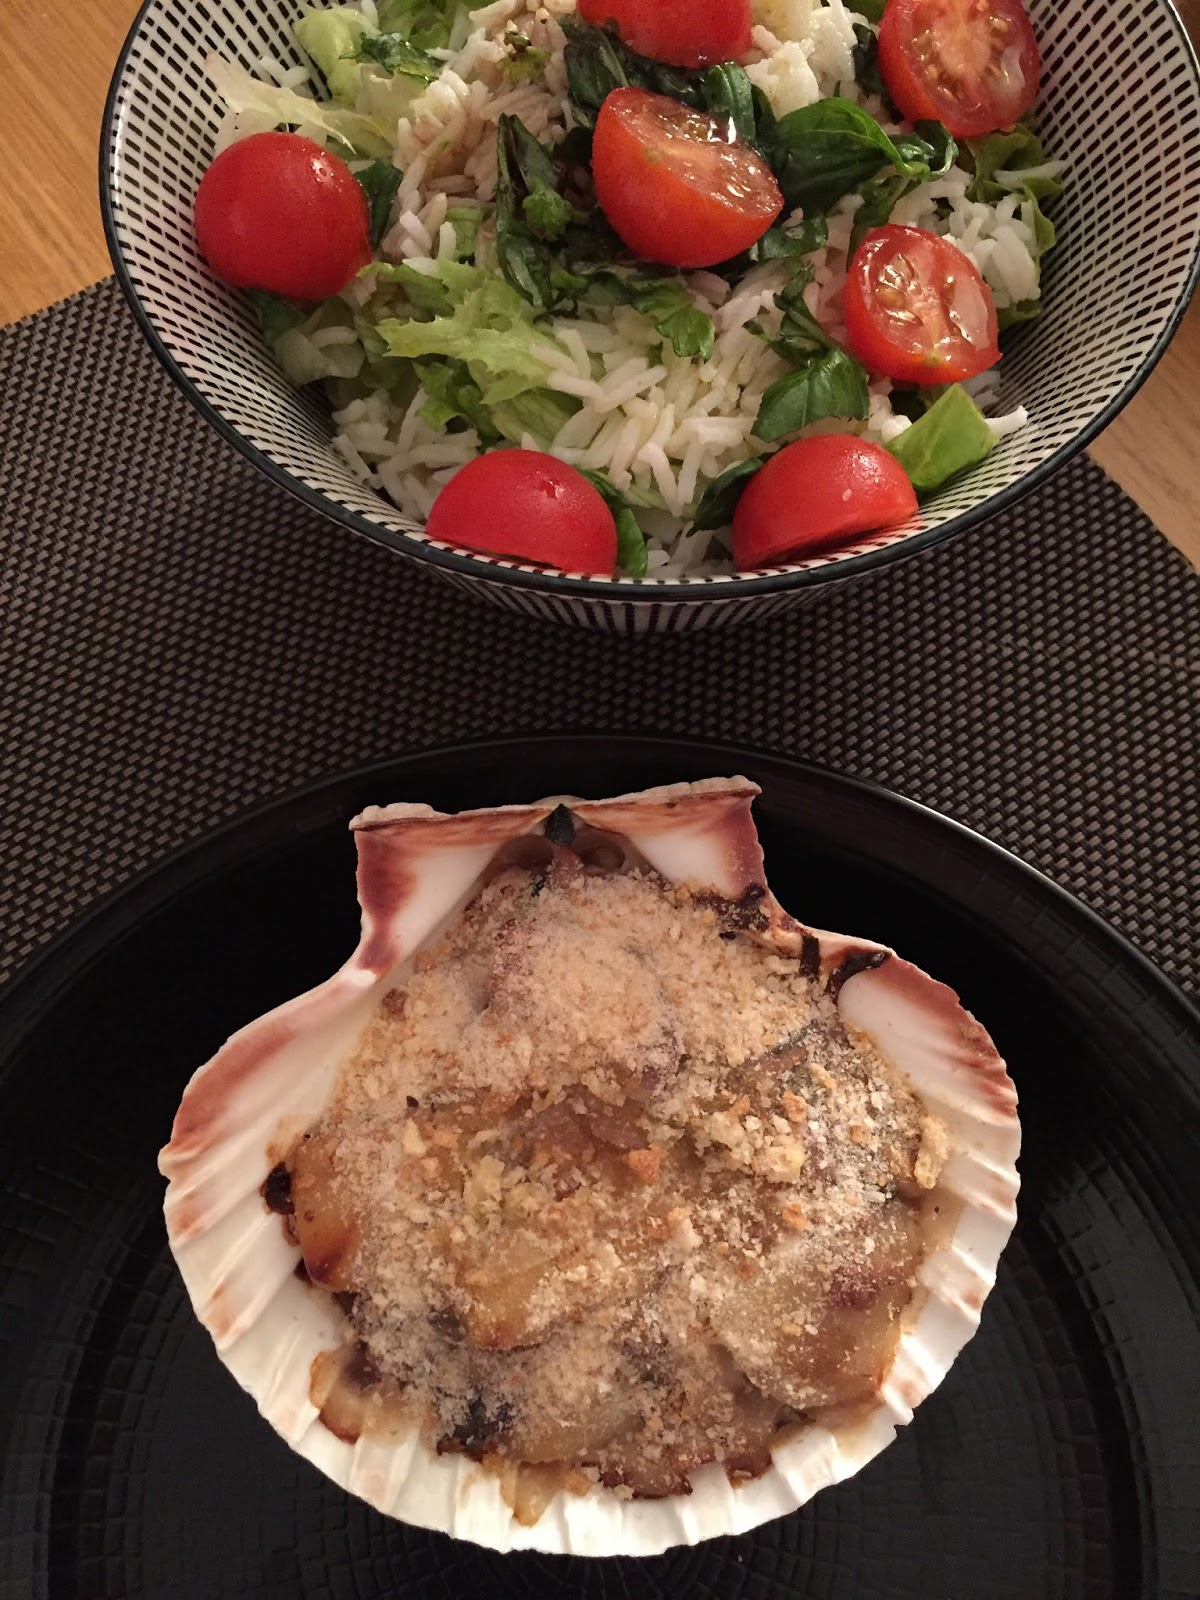 Mes petites cr ations culinaires coquilles saint jacques la bretonne - Coquille saint jacques bretonne champignons ...